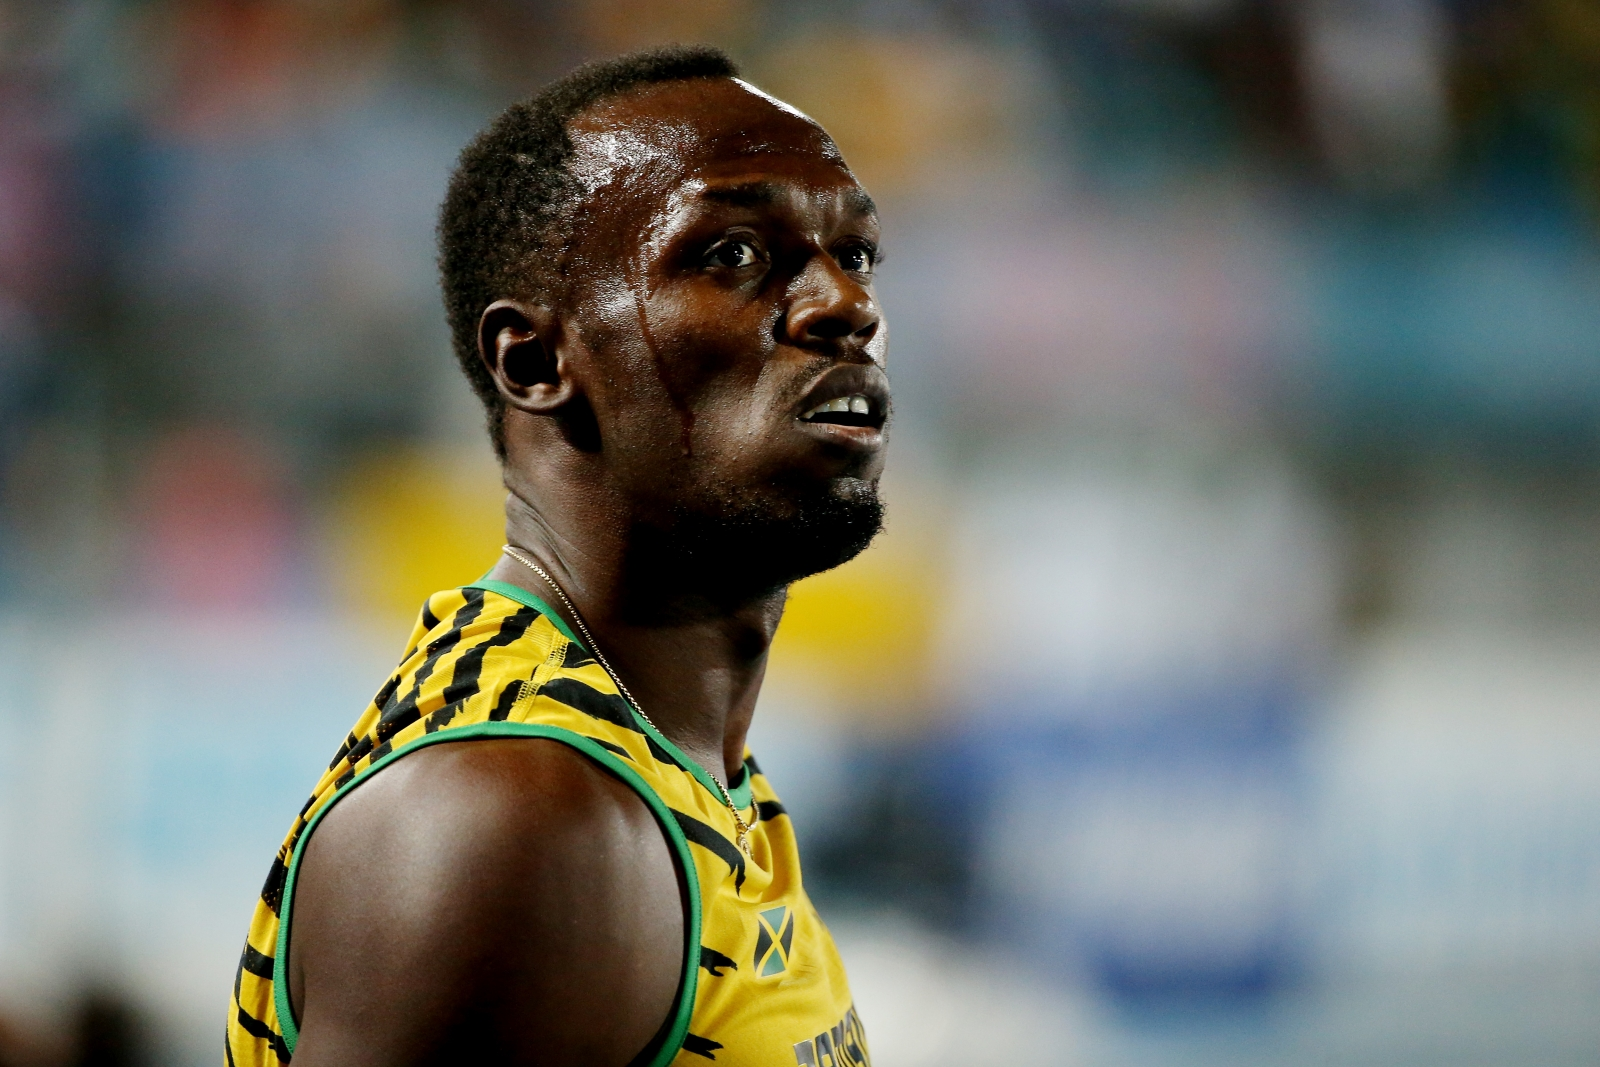 World record holder Usain Bolt sends warning to Justin Gatlin